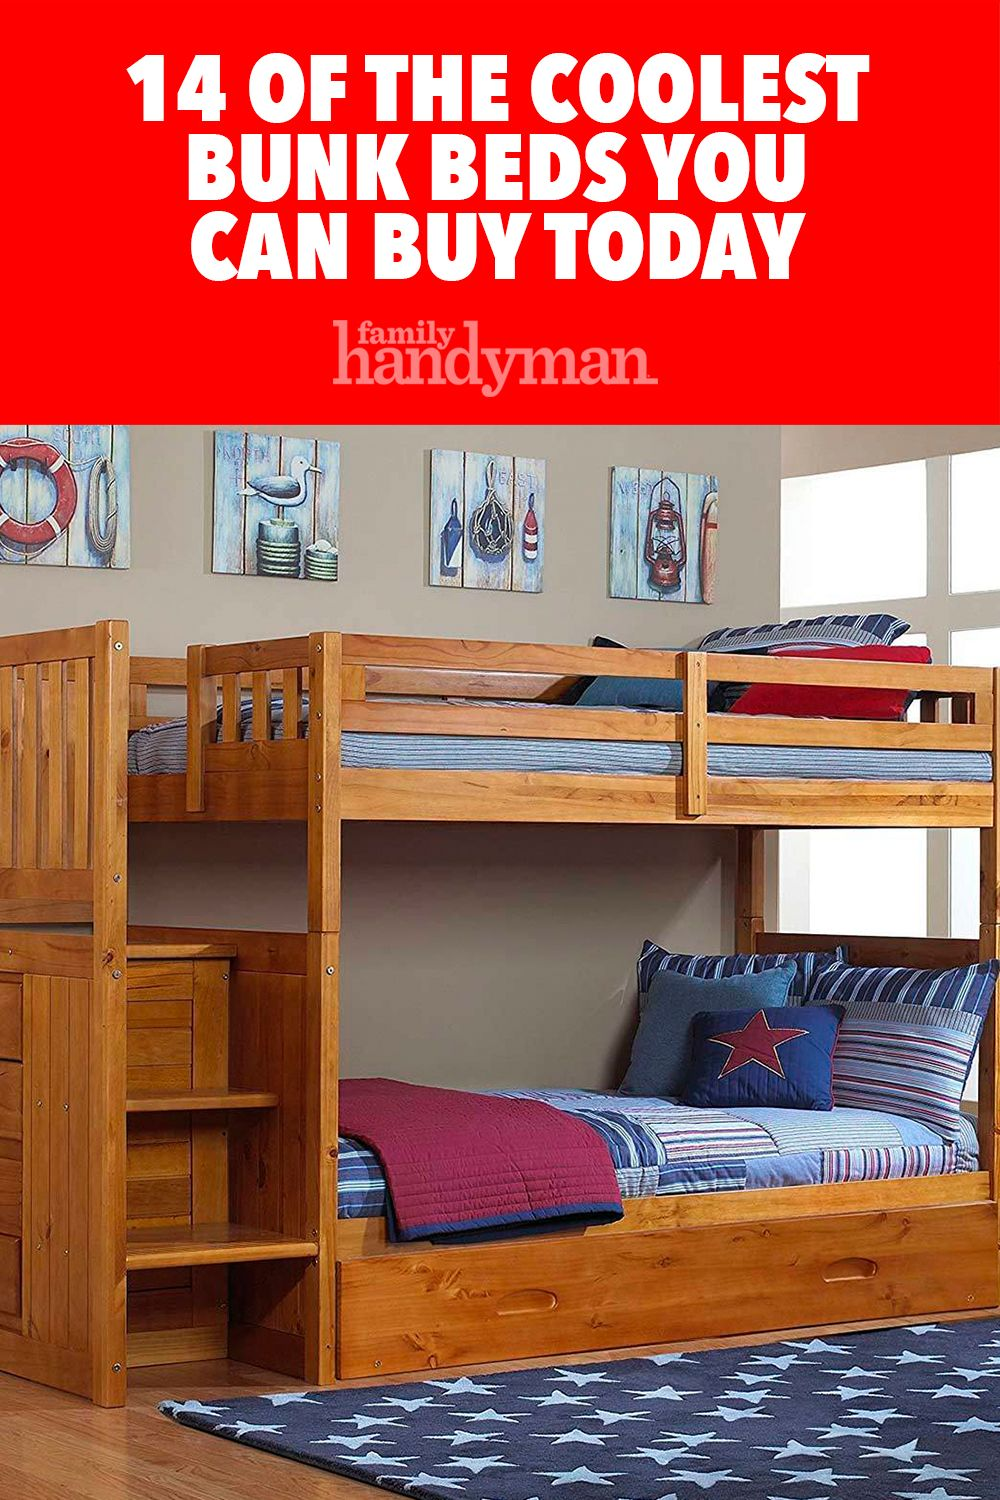 14 of the Coolest Bunk Beds You Can Buy Today Cool bunk